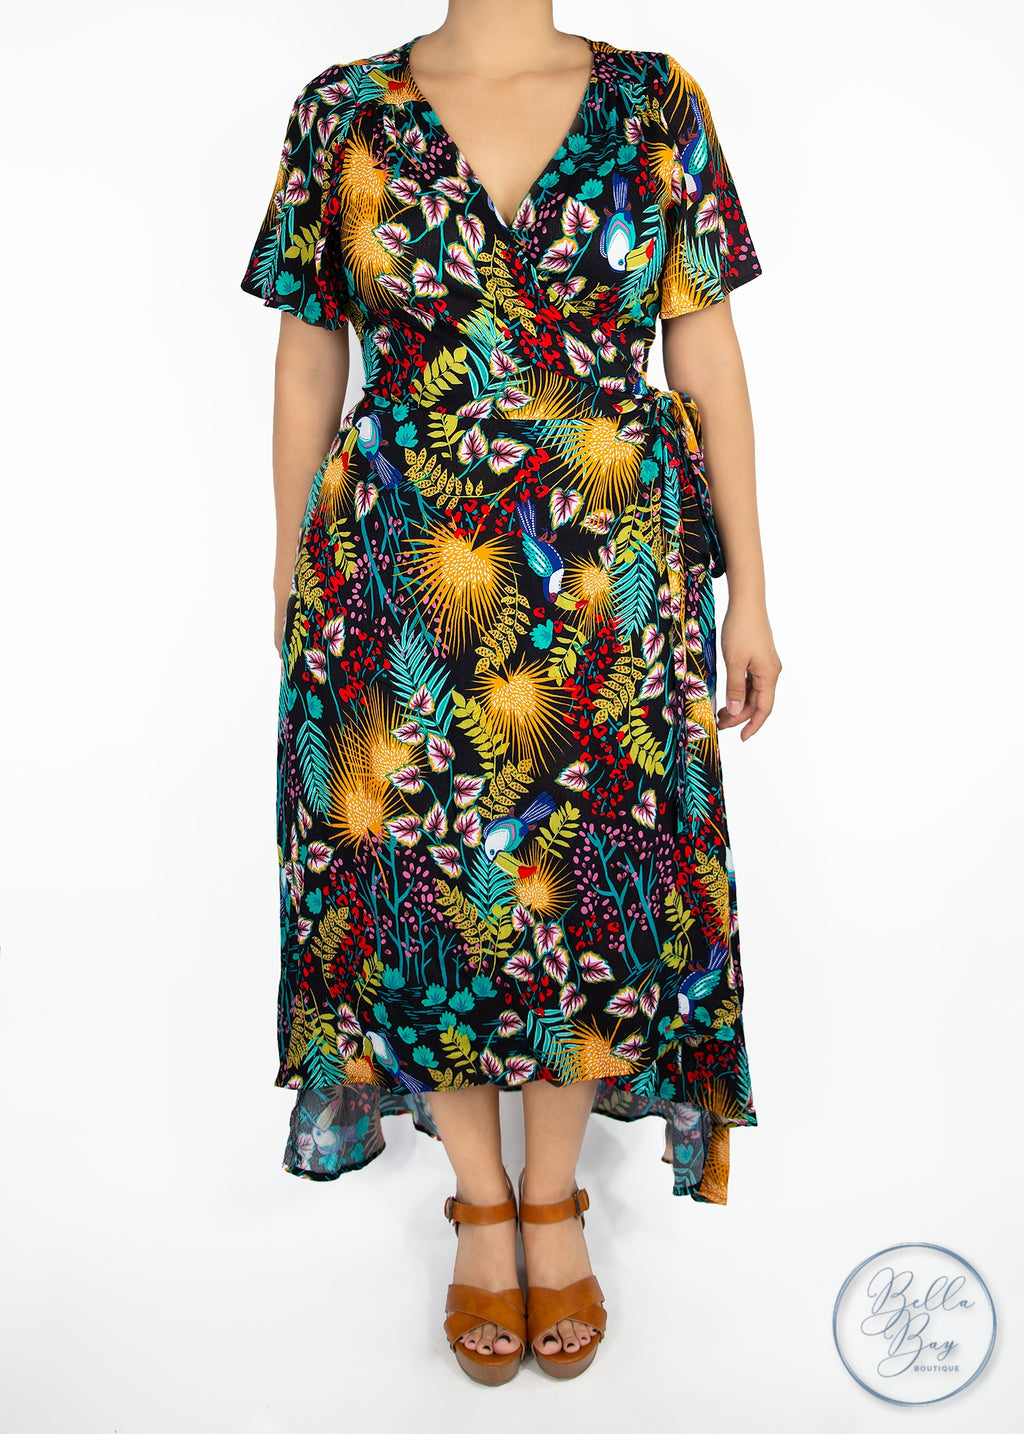 Paisley Raye Primrose Wrap Dress - Tropical (S) - Paisley Raye with Bella Bay Boutique, shop now at  https://shopbellabay.com/ or locally in Newport Oregon